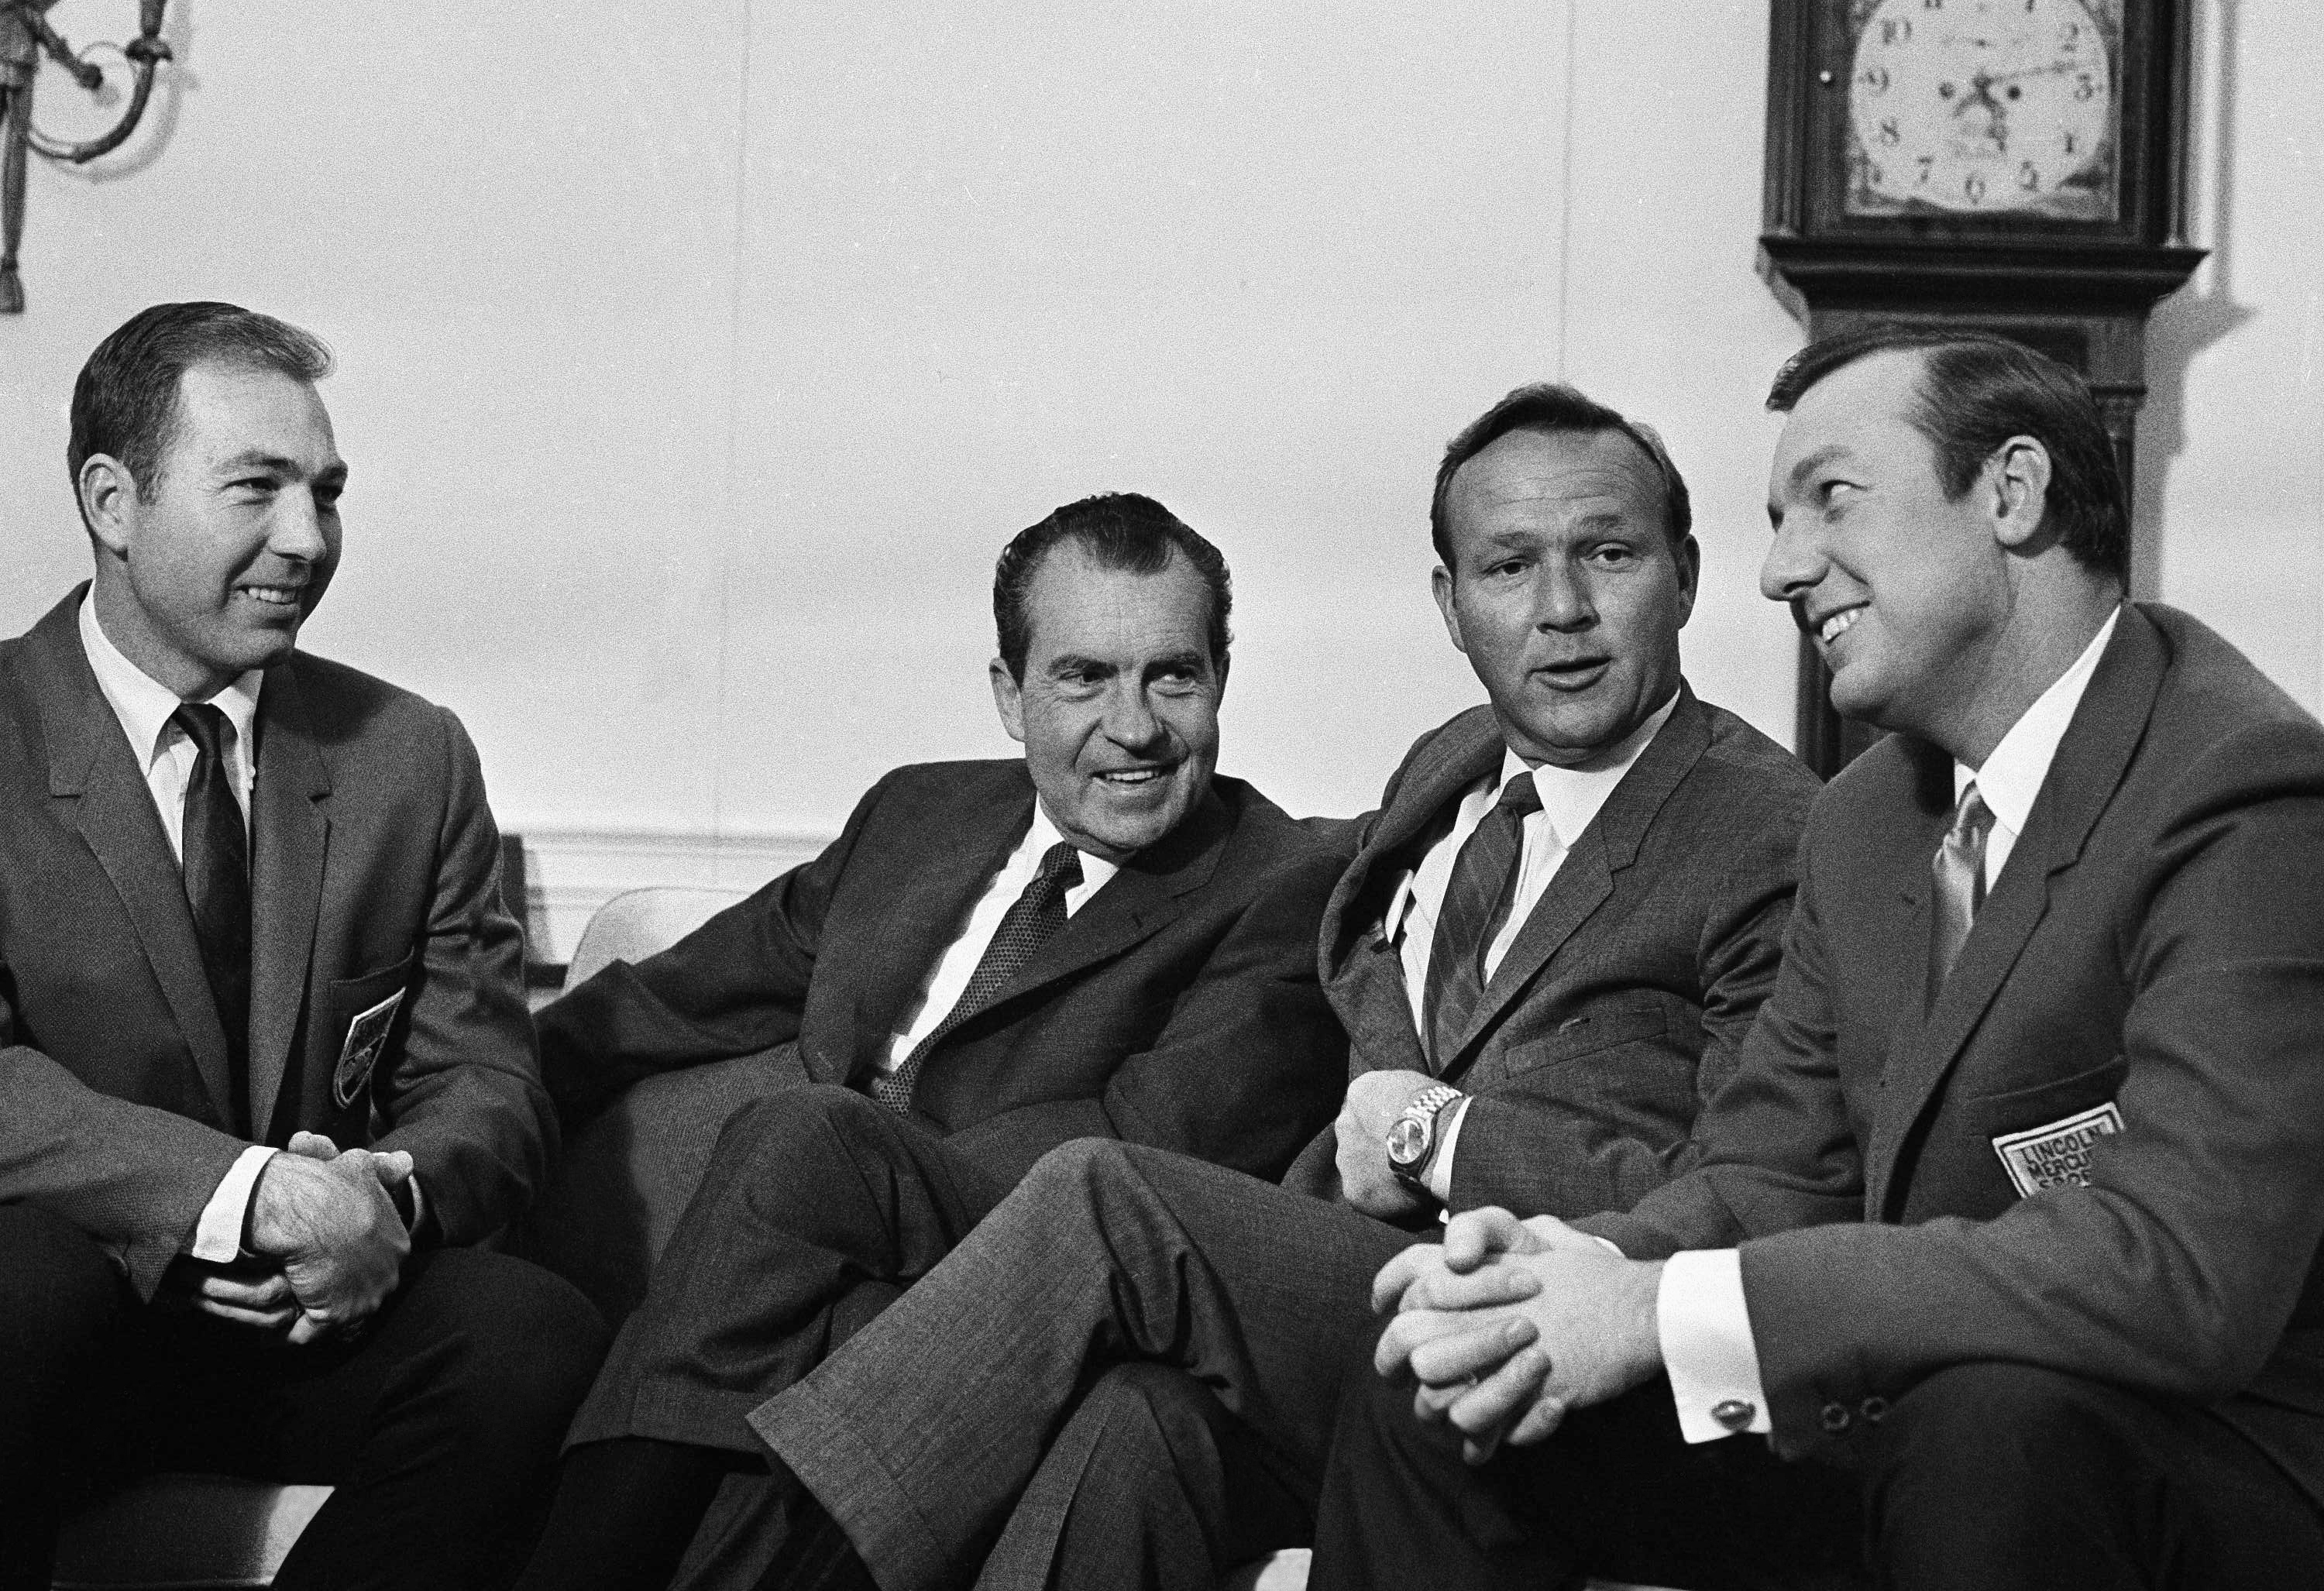 President Richard Nixon poses in the White House with three stars of the sports world, Feb. 13, 1969 in Washington. His guests from left, were: Quarterback Bart Starr of the Green Bay Packers, Golfer Arnold Palmer and Al Kaline of the Detroit Tigers. The three were in Washington to attend a special sports program at the National Press Club.